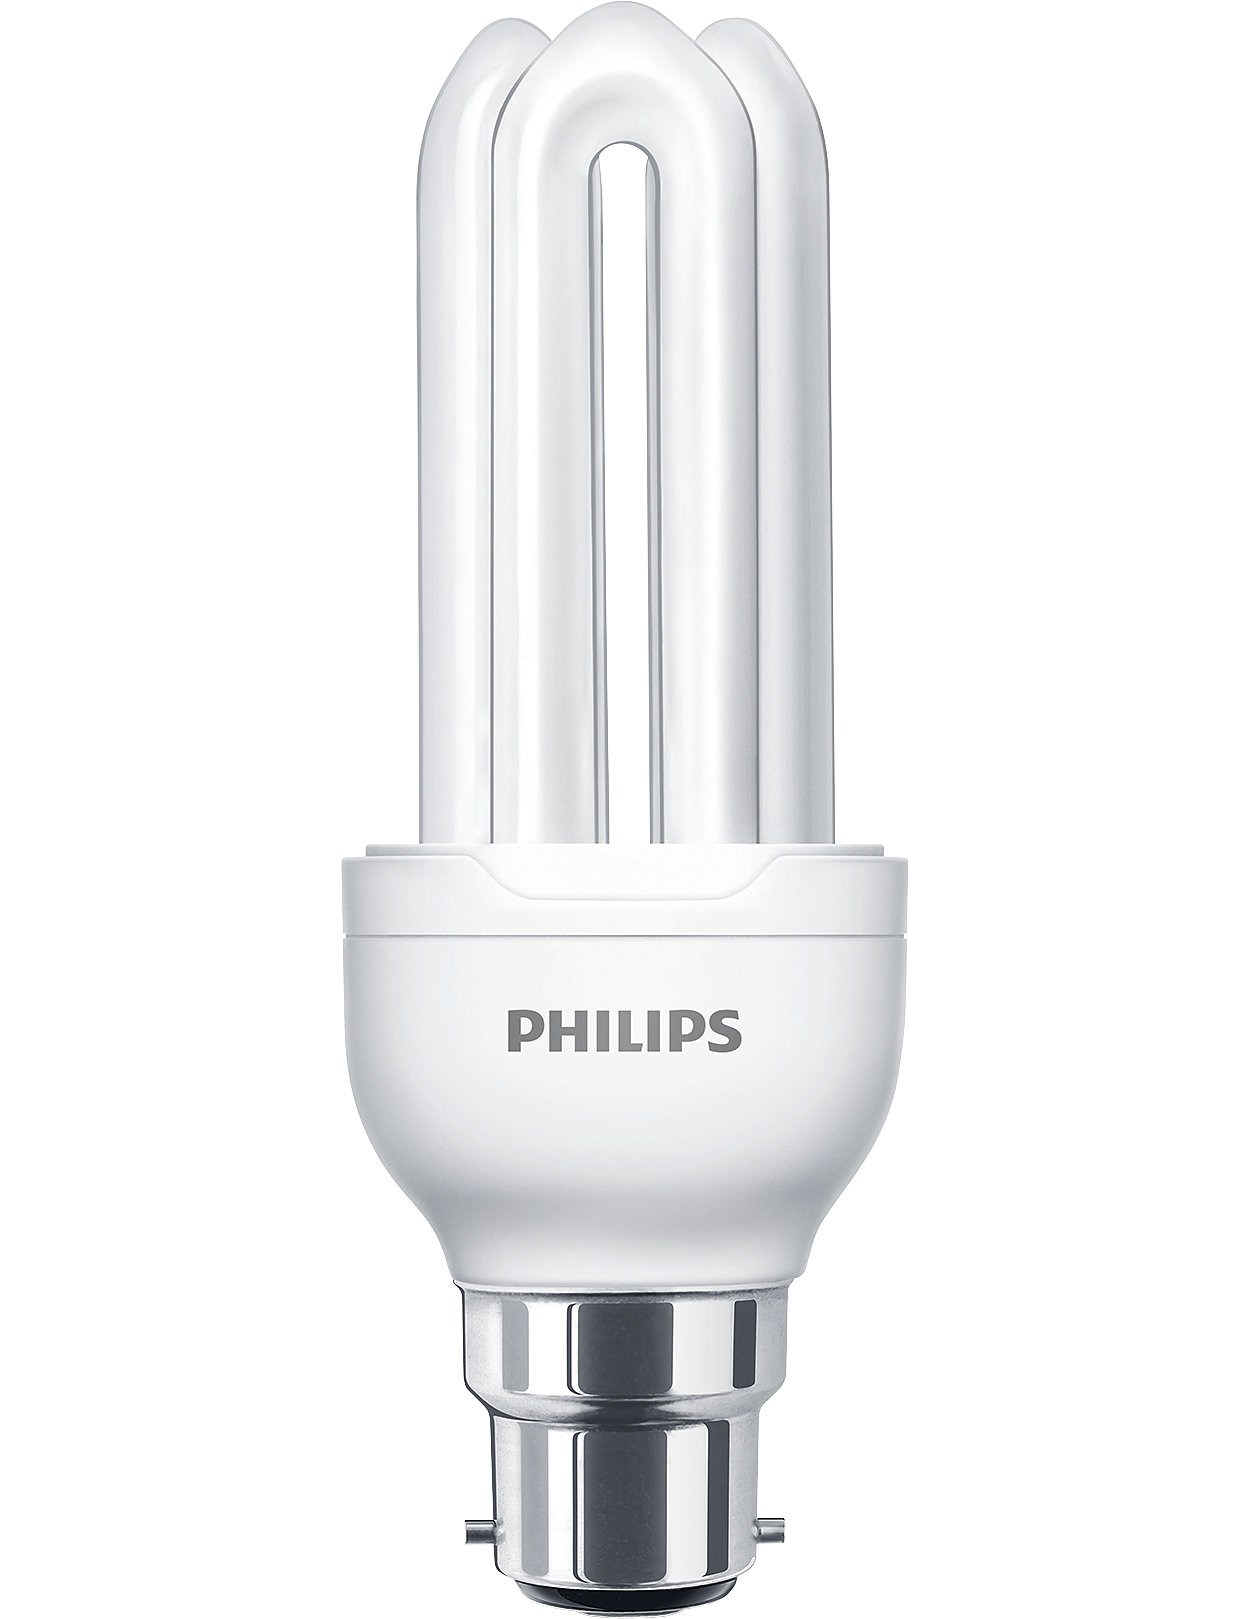 Small and powerful energy saver gives high quality light, with compact design